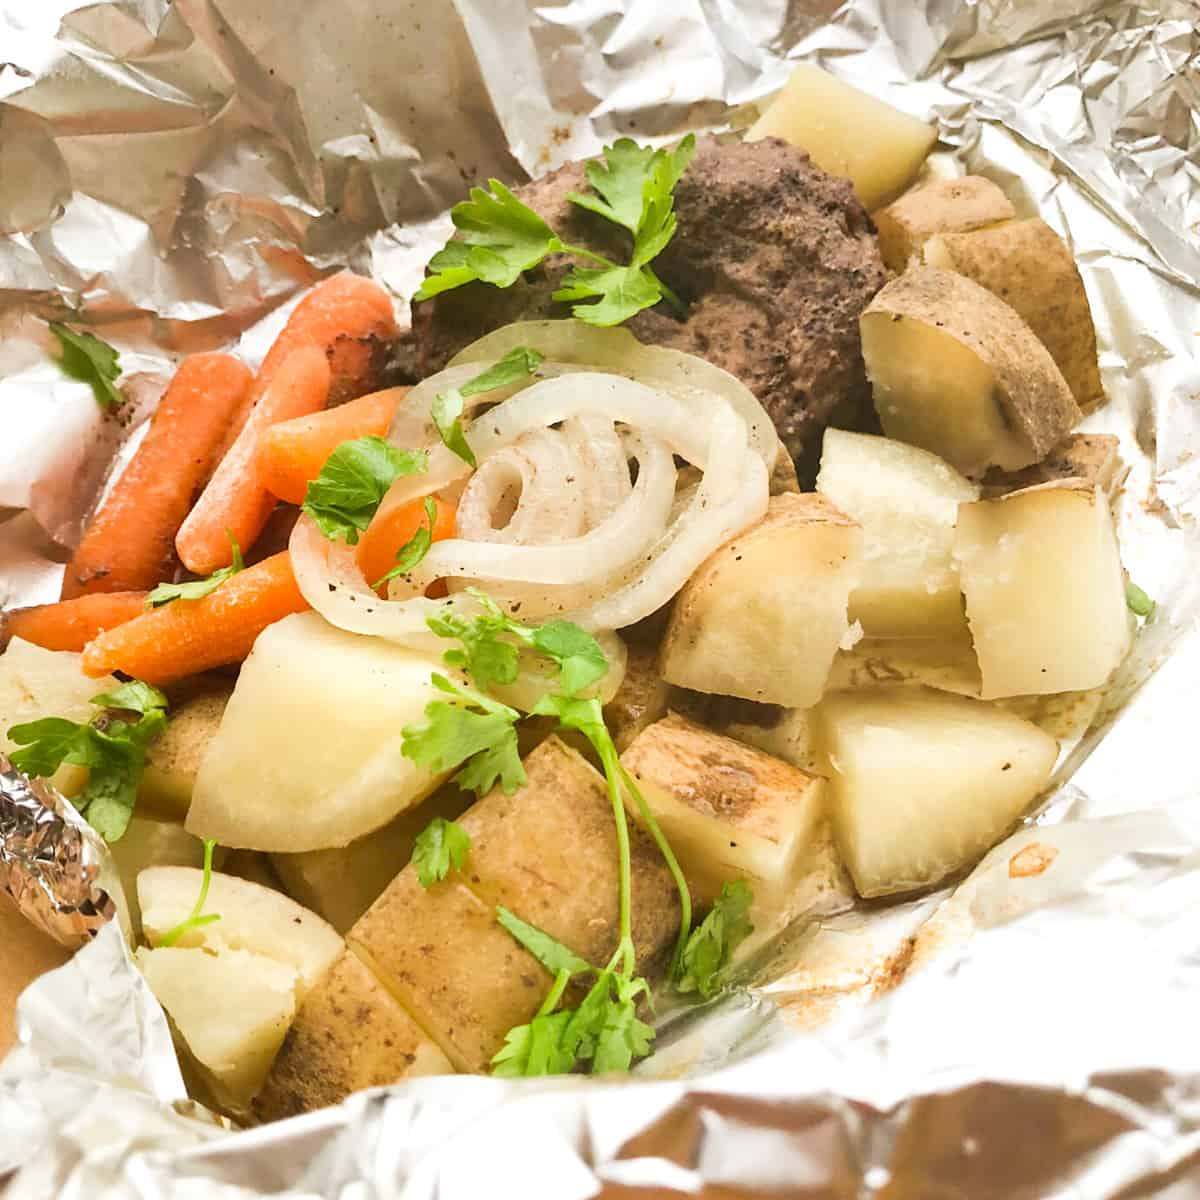 A hamburger foil packet with potatoes, carrots, and onions